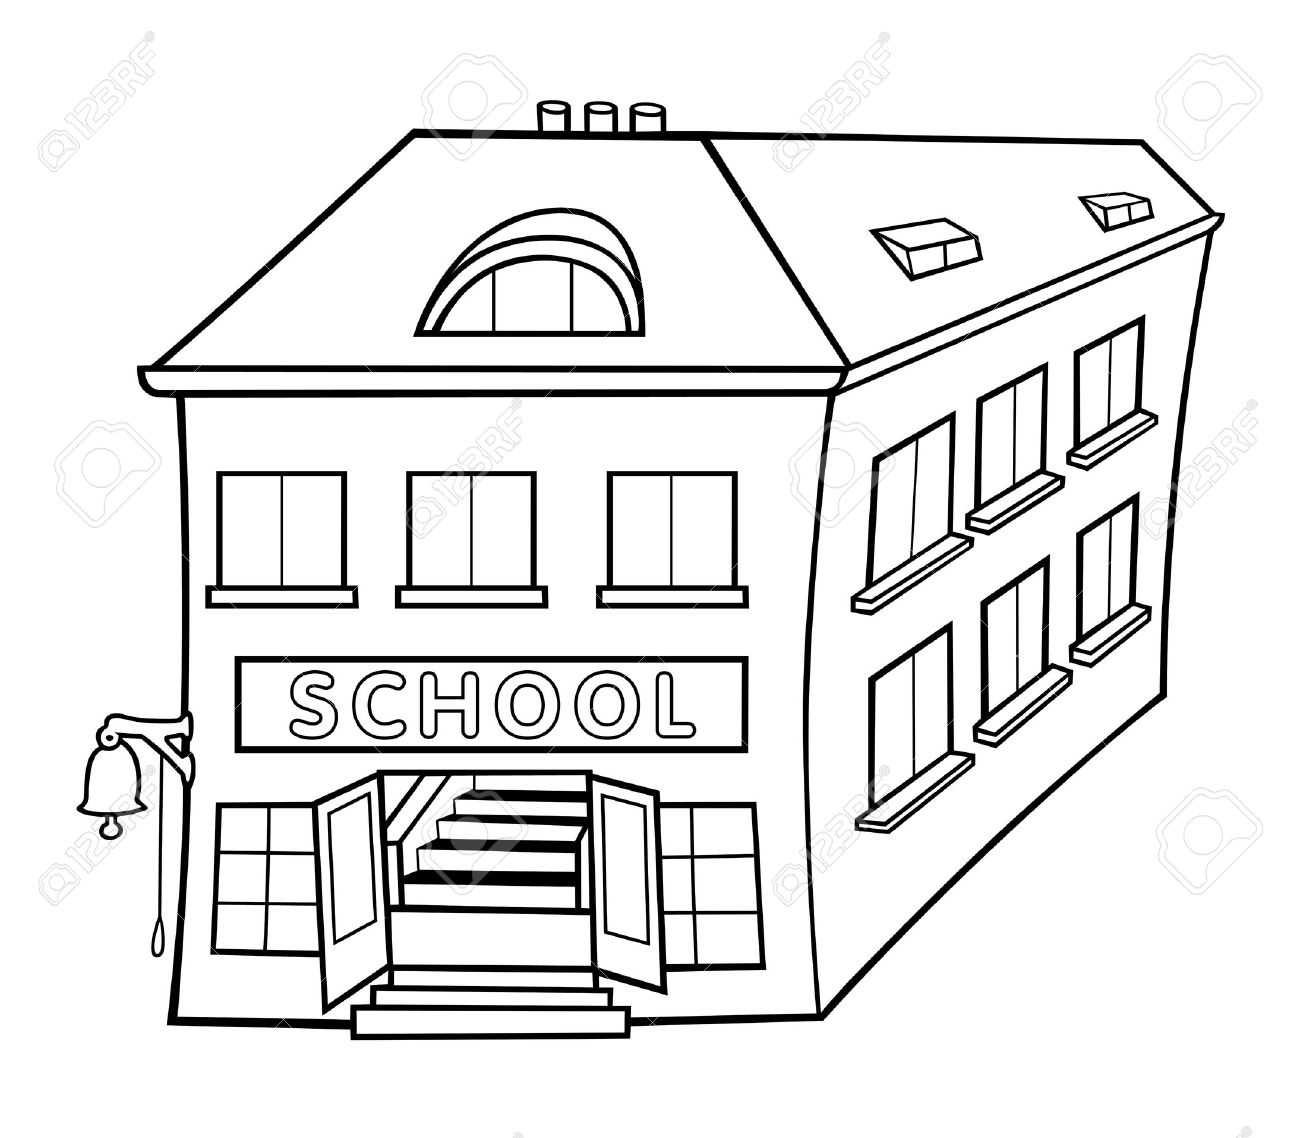 Black And White School Building Clipart.